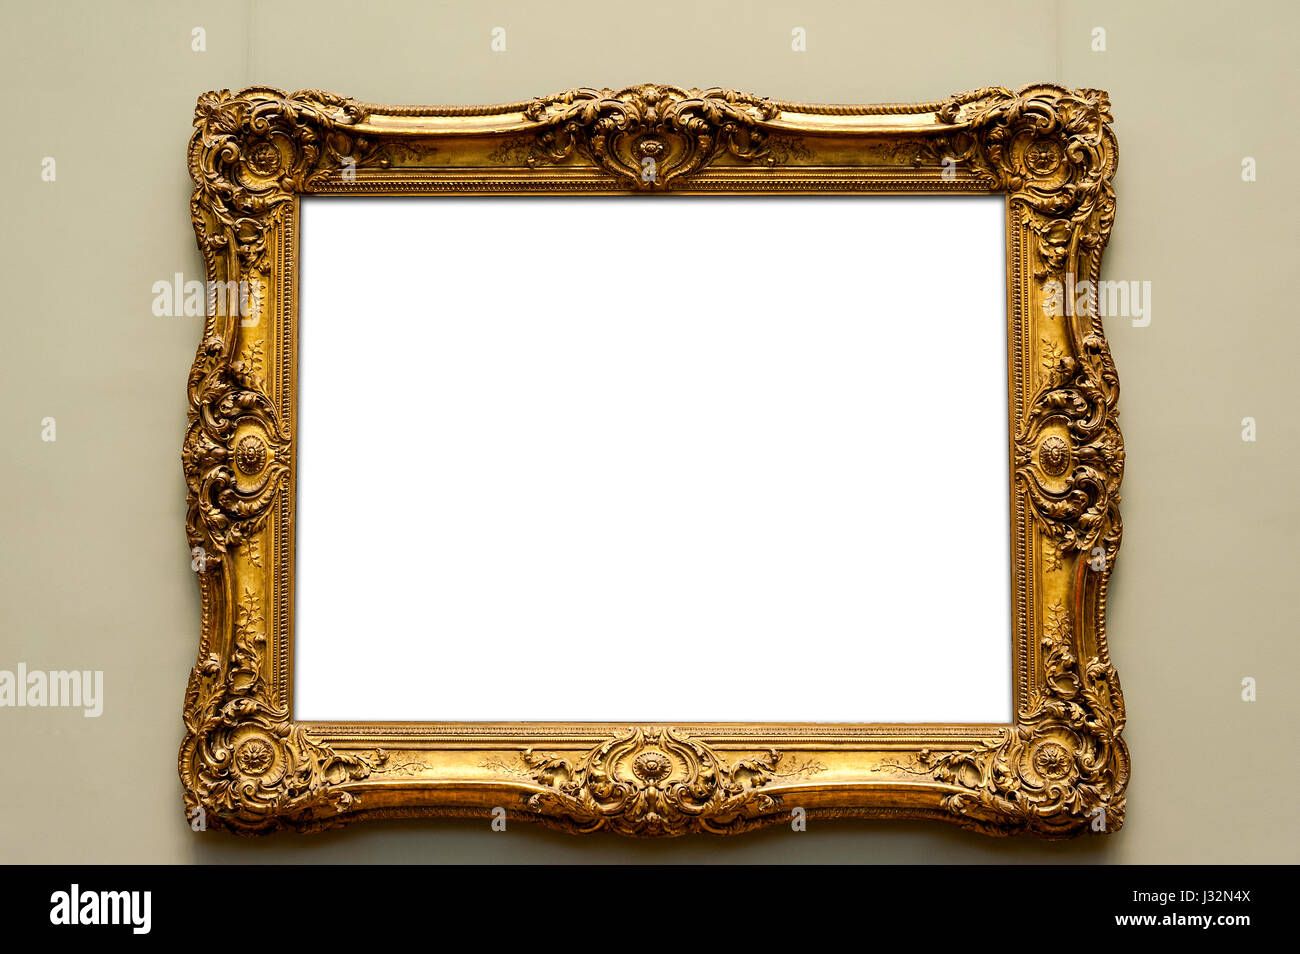 f96ee03398a8 antique golden frame isolated with white inside for your copyspace - Stock  Image